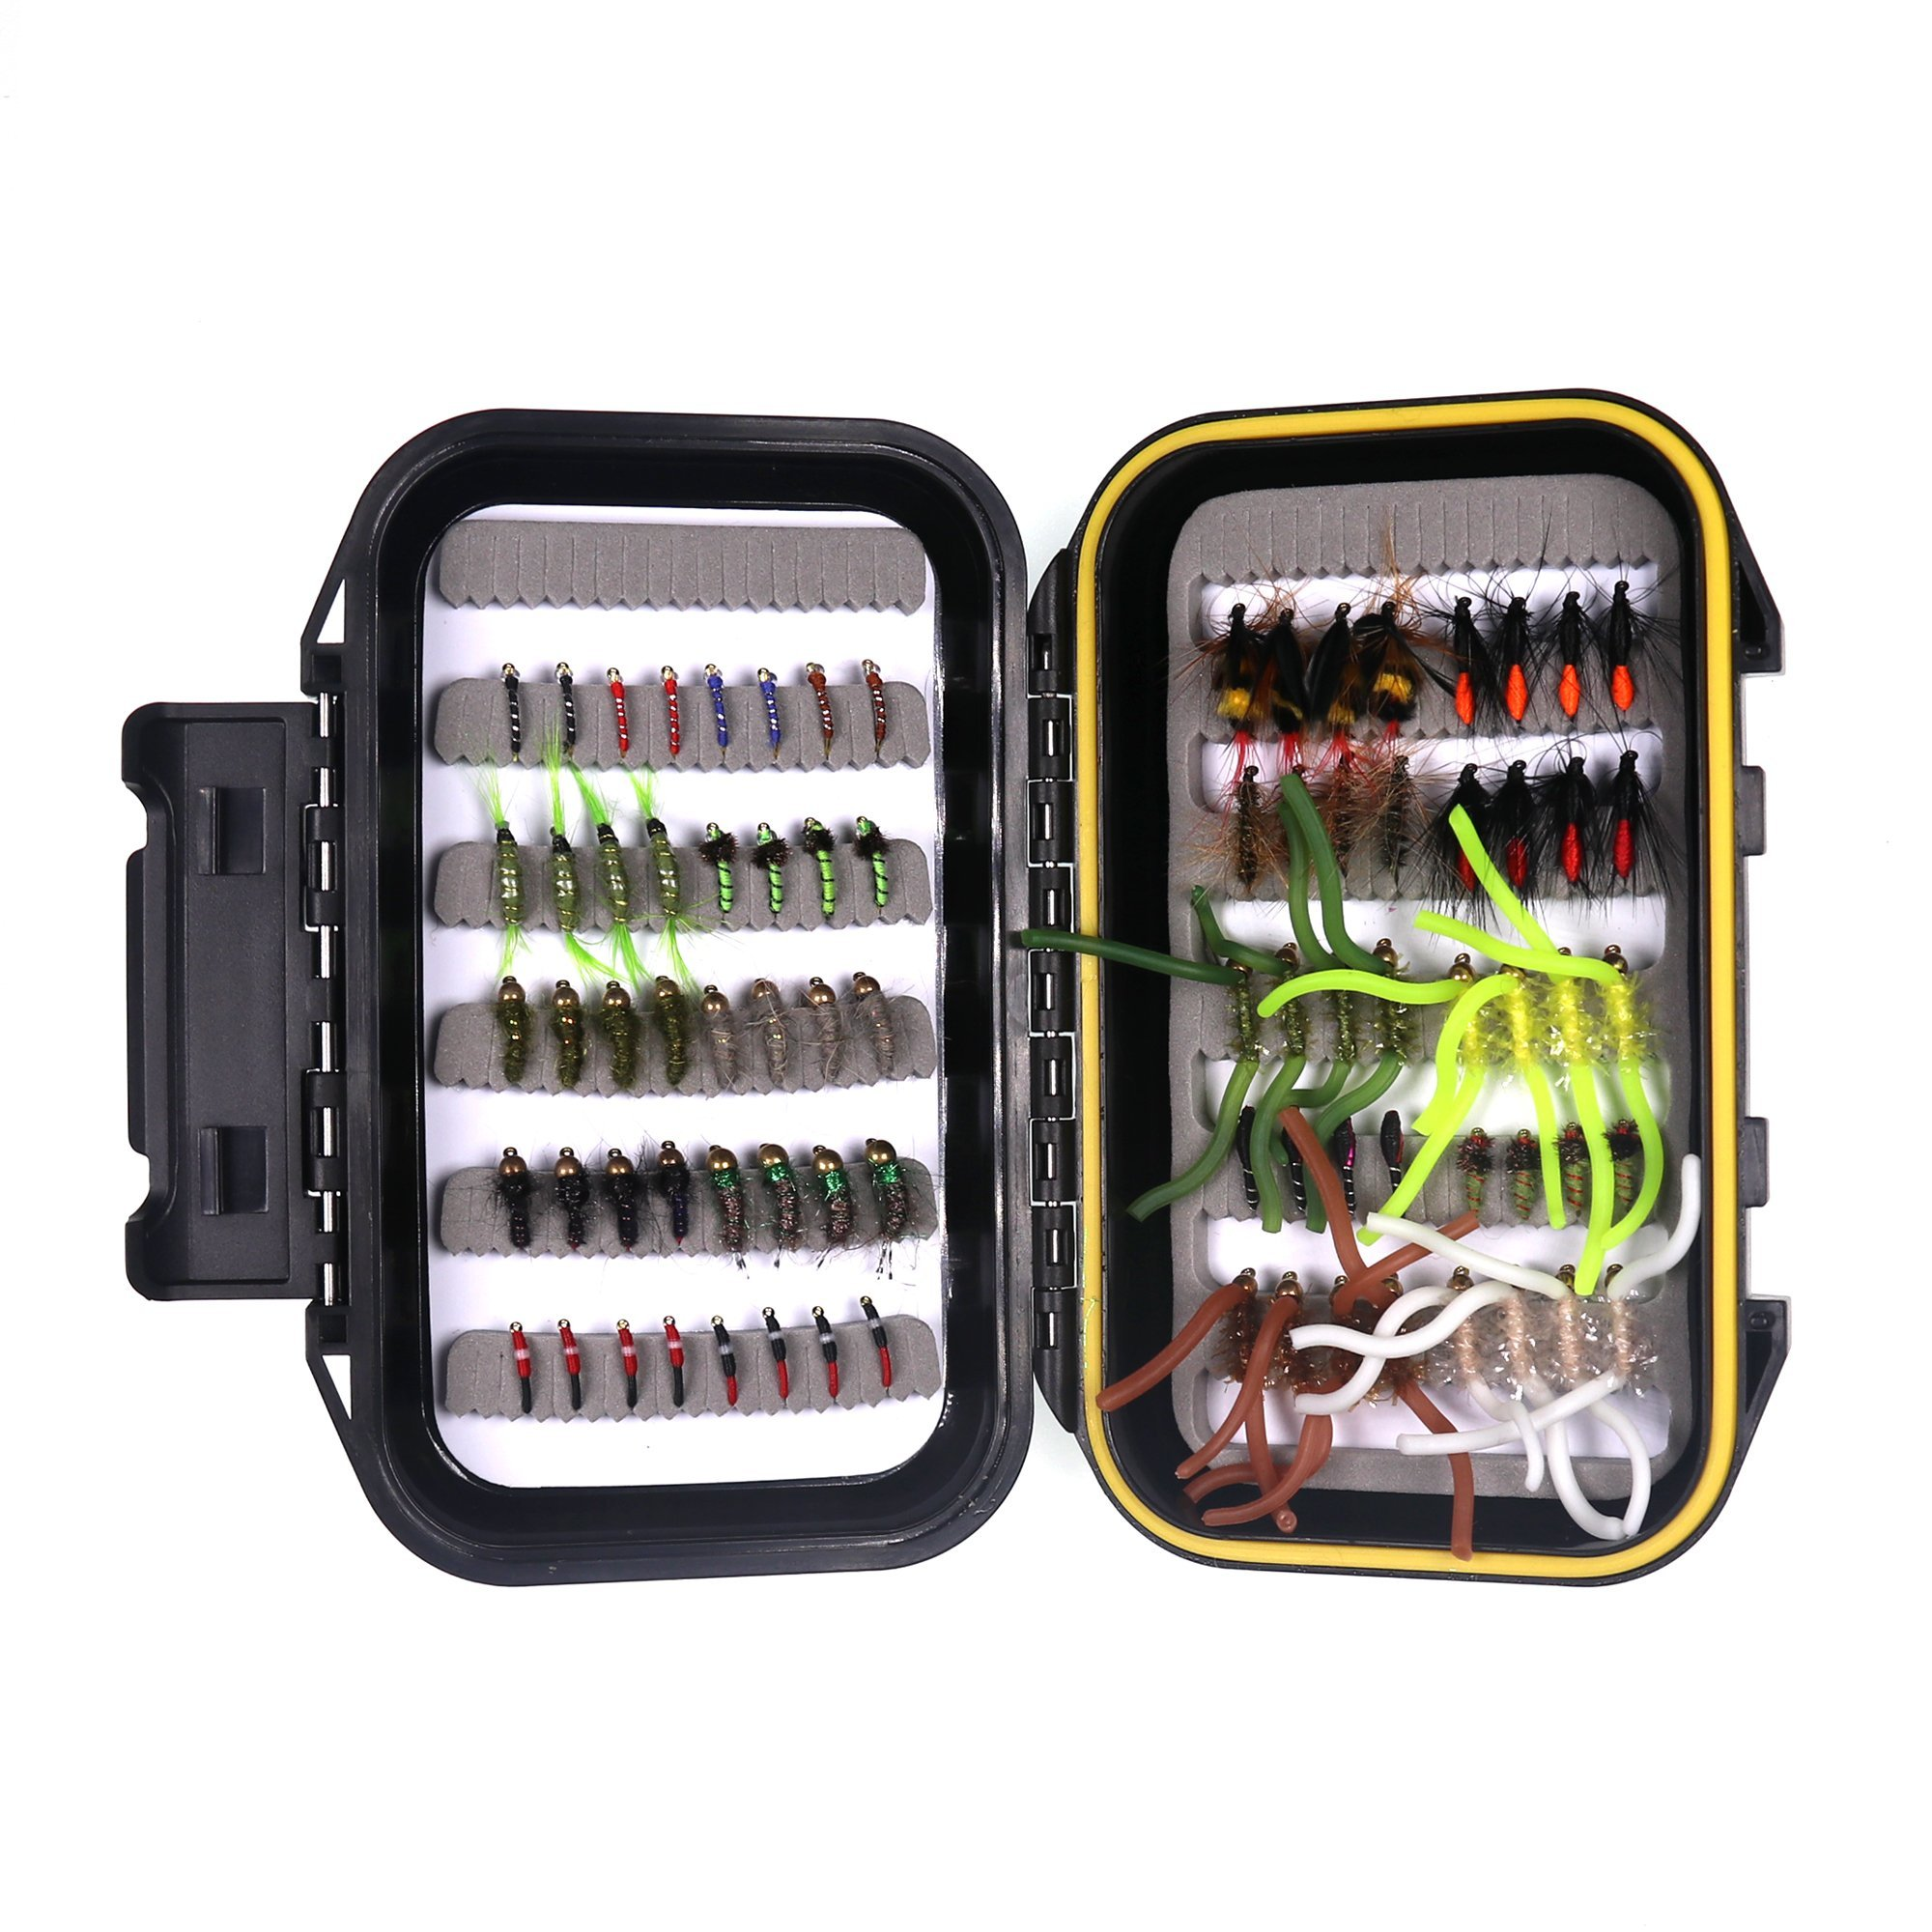 wifreo Fly Fishing Fly Kit Fly Fishing Lure Dry Wet Nymph Streamer Scud Beahead Stonefly with Waterproof Fly Box (80 PCS Fly Kit + Waterproof Fly Box)